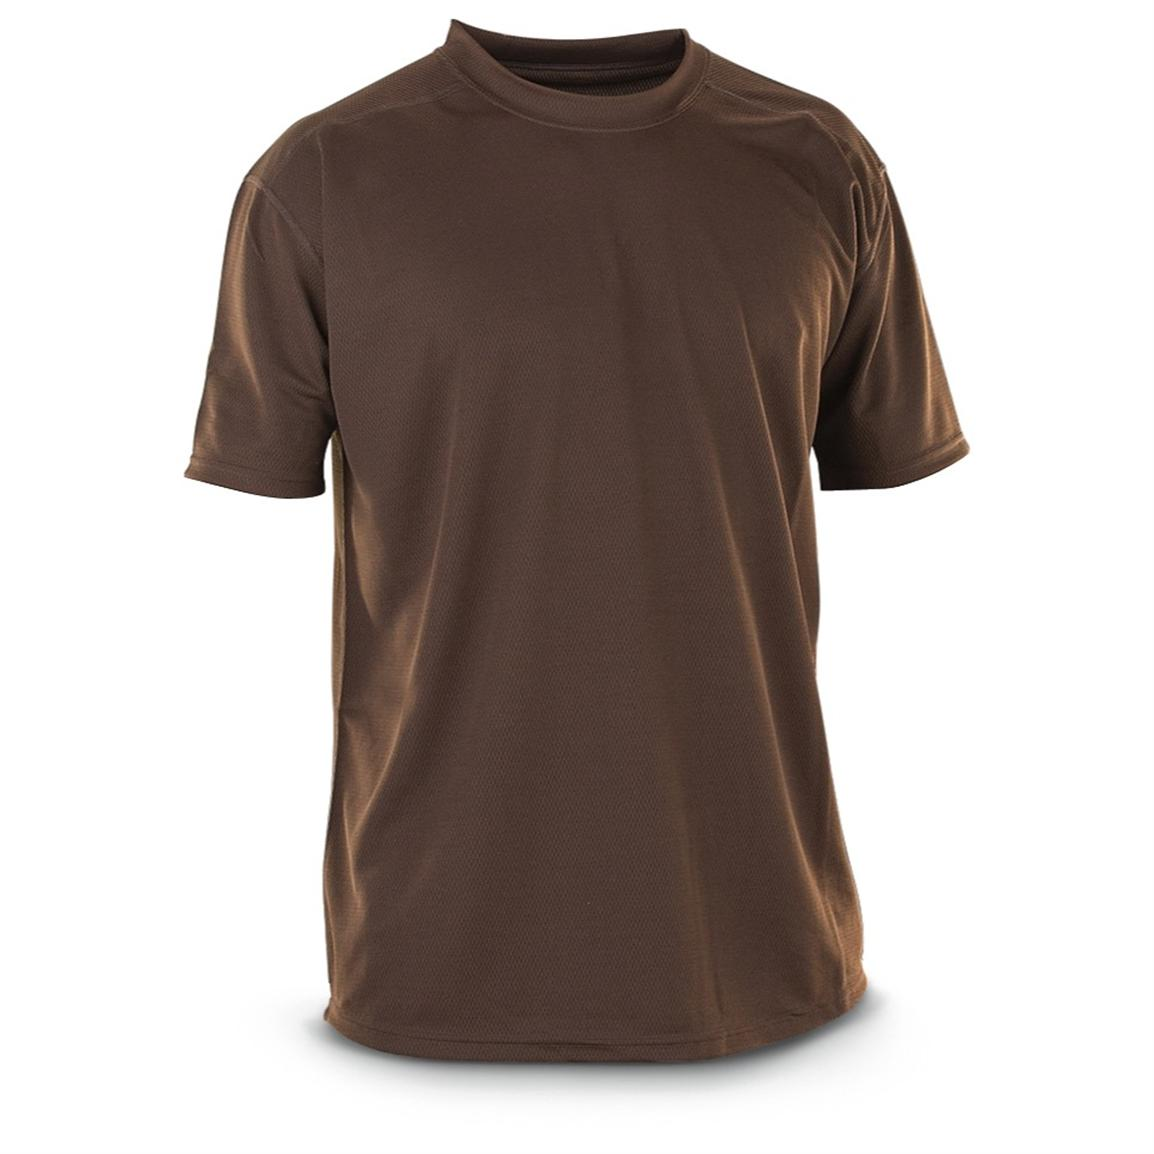 3-Pk. of New Men's British Military CoolMax Tees, Brown